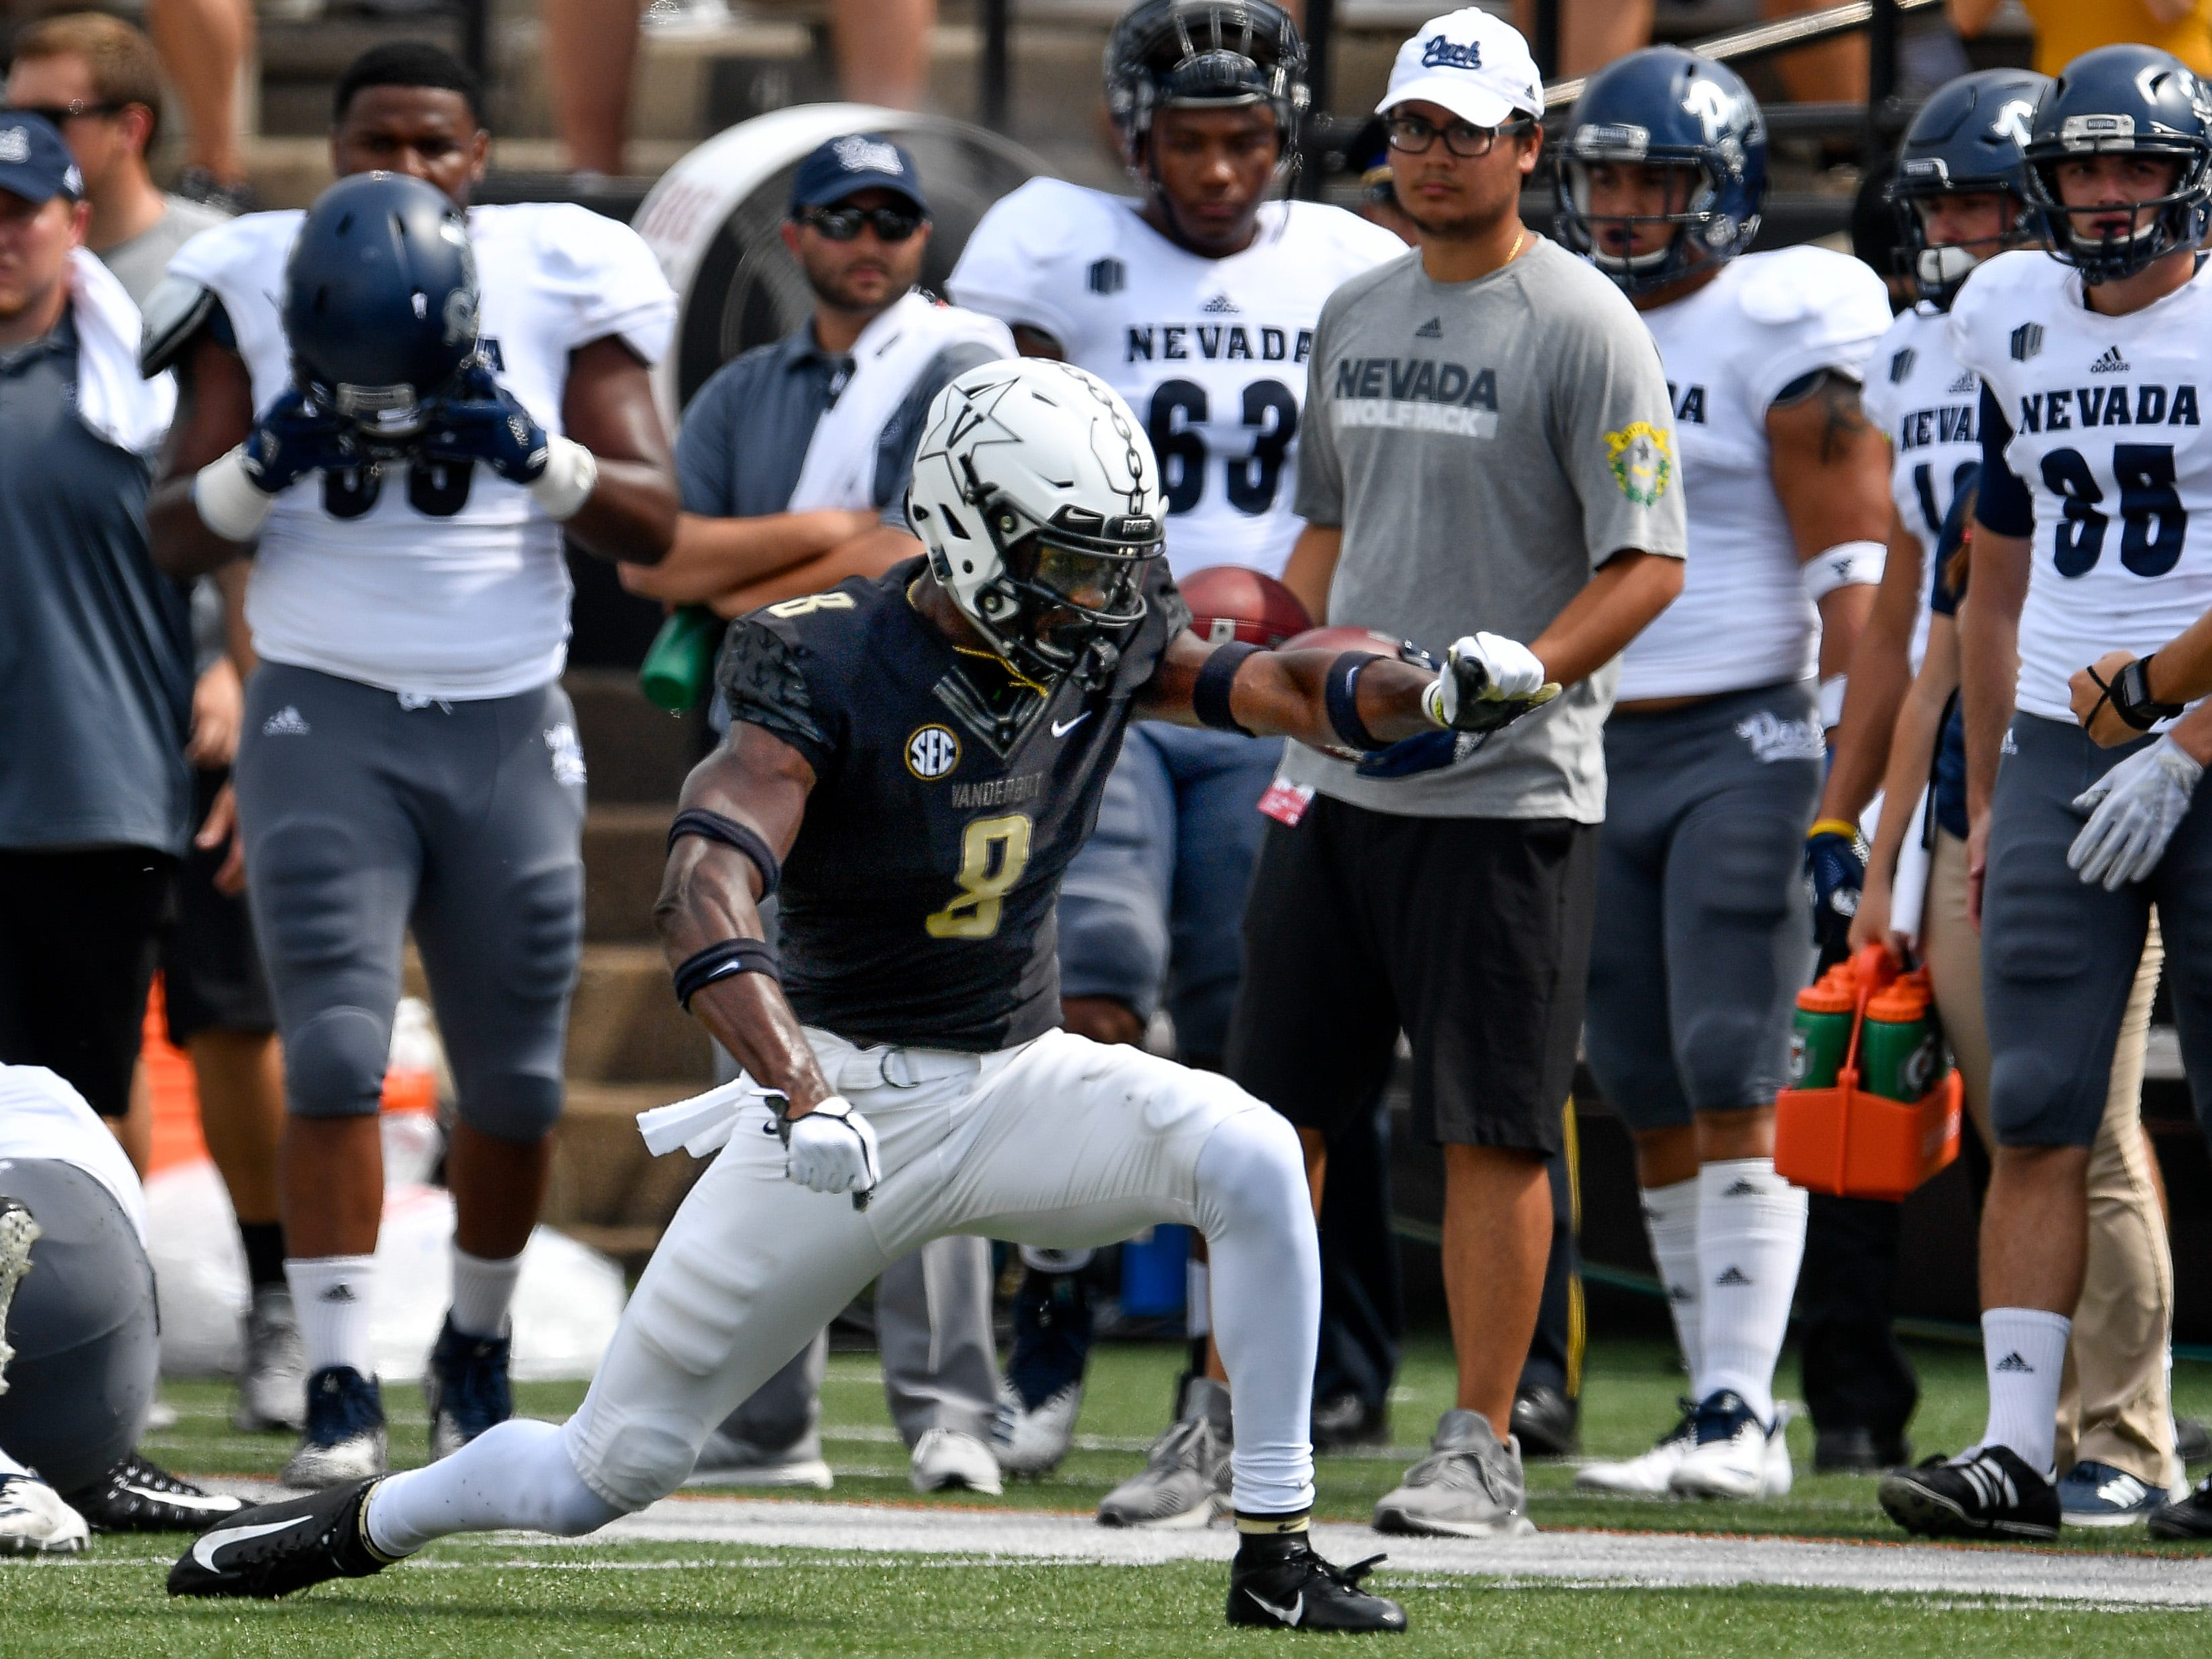 Vanderbilt cornerback Joejuan Williams (8) celebrates a Nevada fourth down during the first half at Vanderbilt University in Nashville, Tenn., Saturday, Sept. 8, 2018.